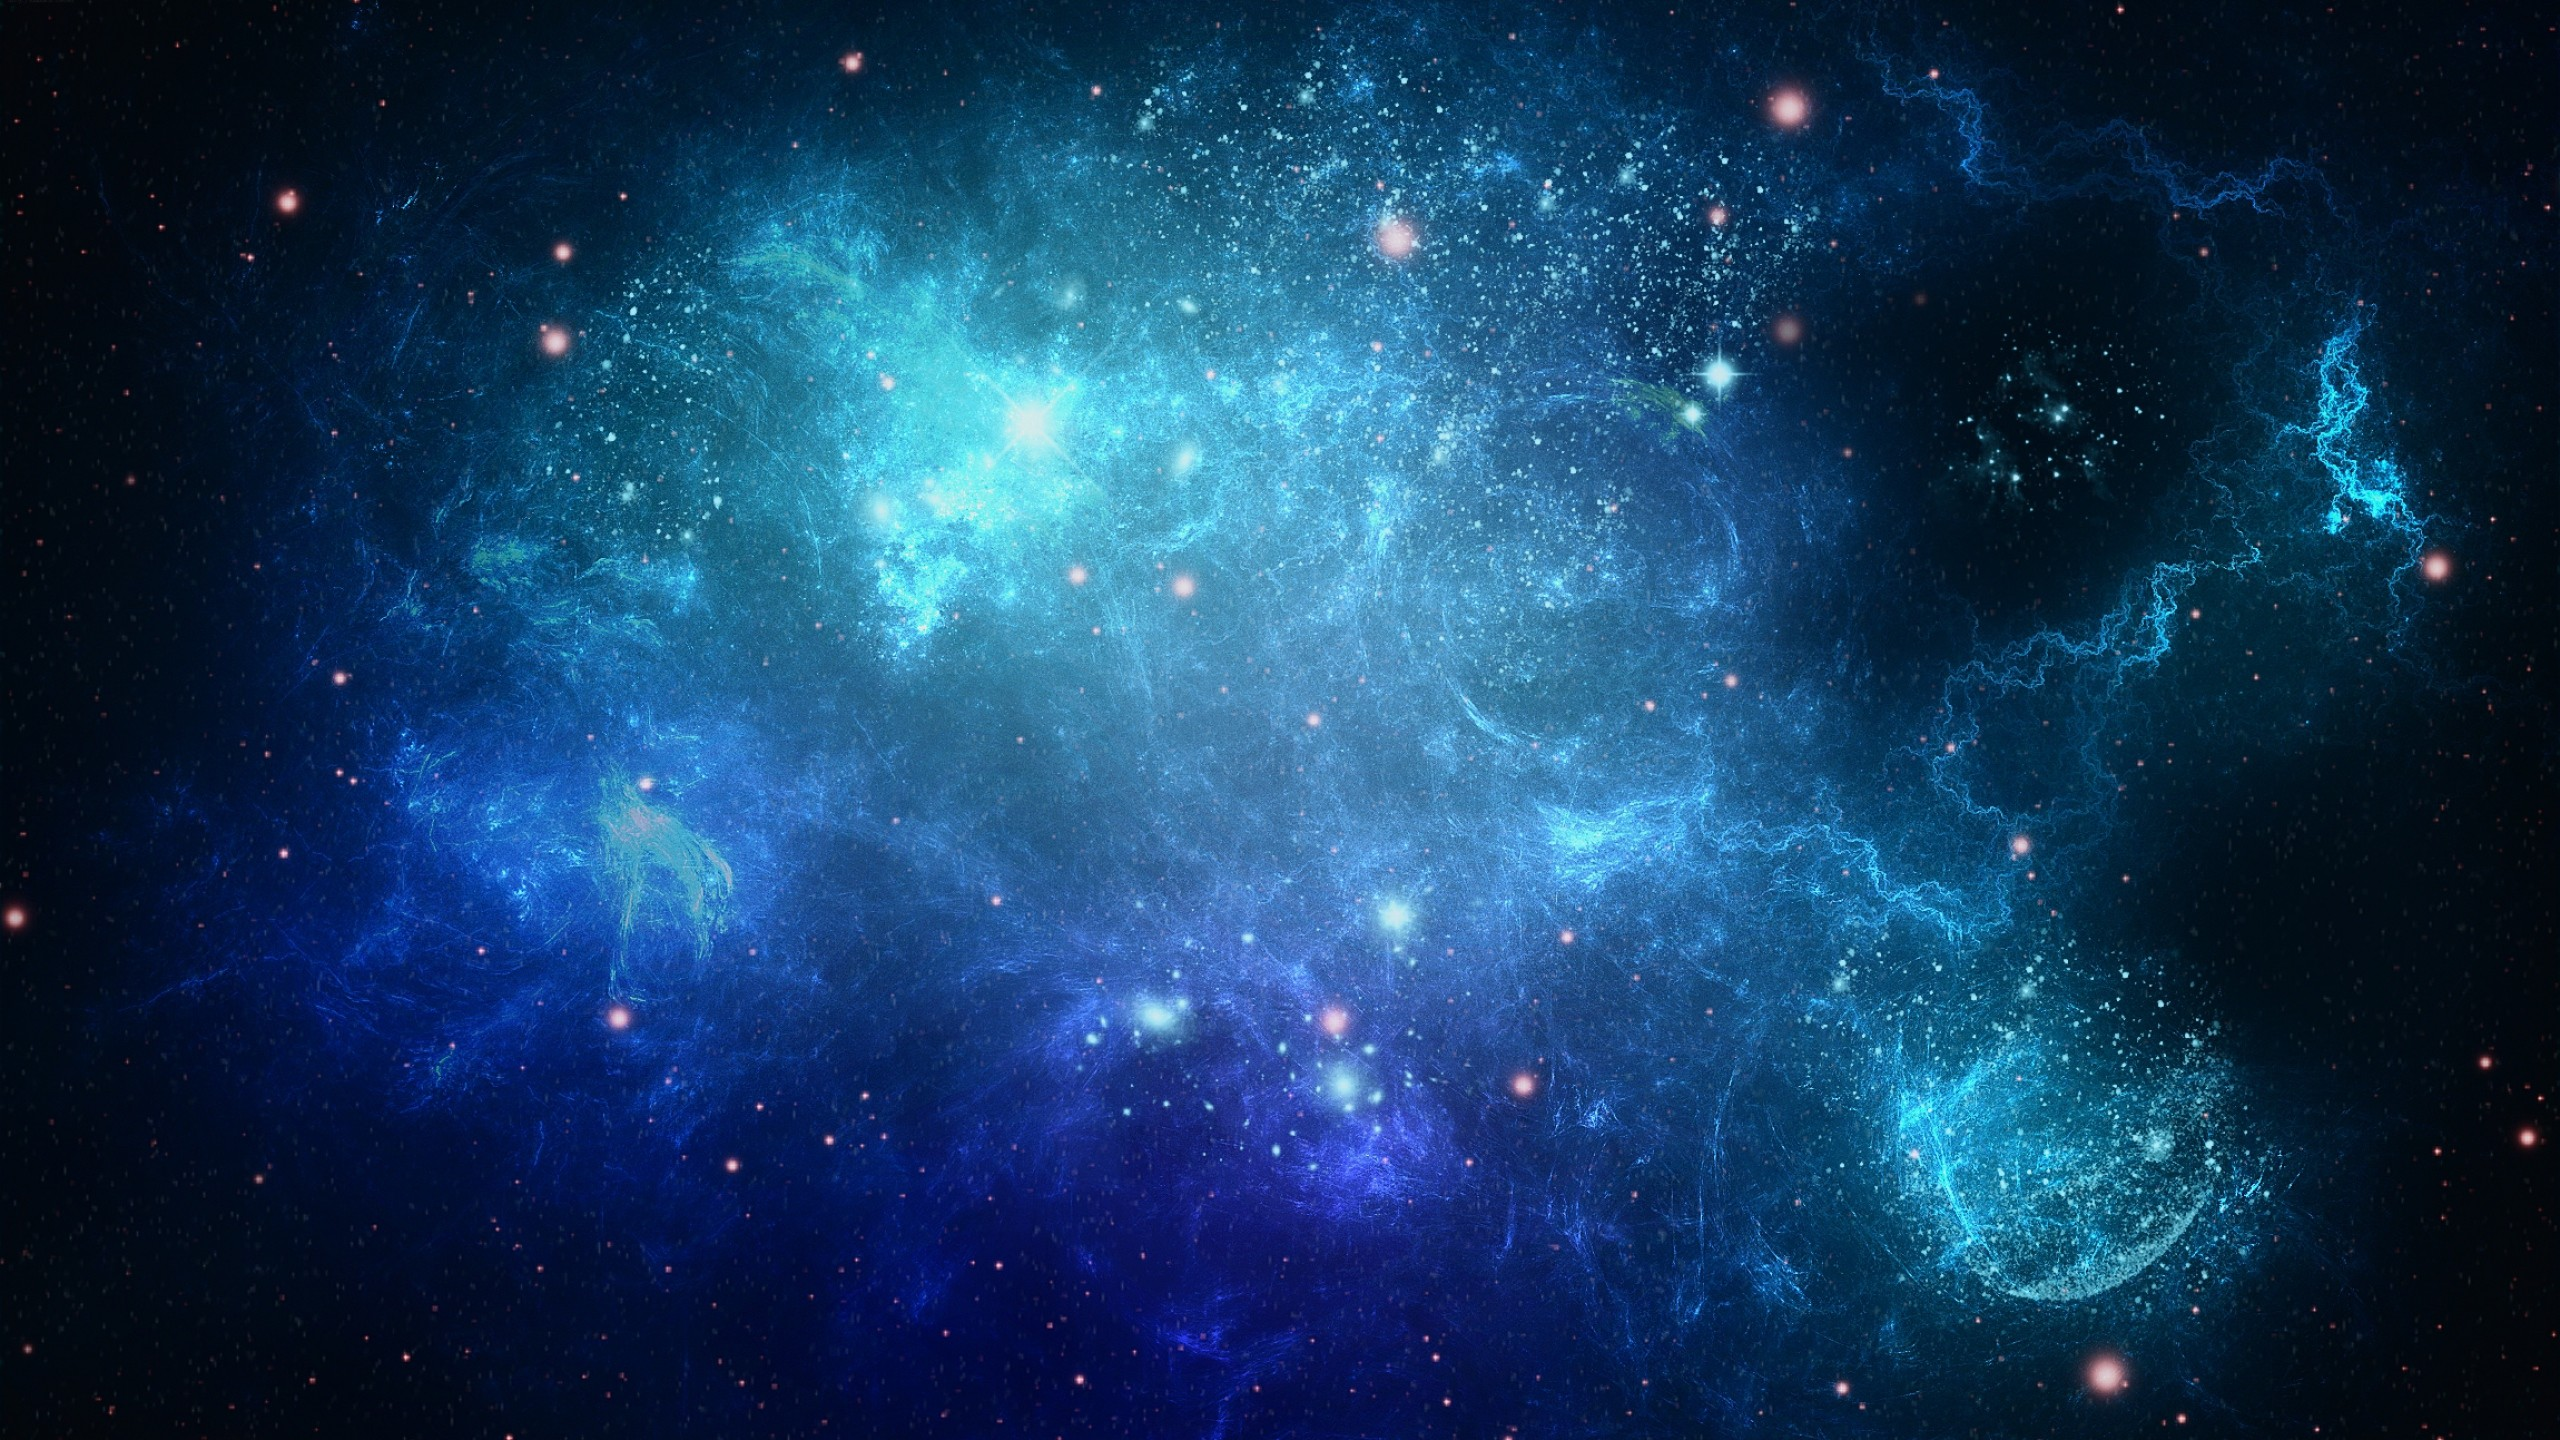 2560x1440 Space Wallpaper (81+ Images